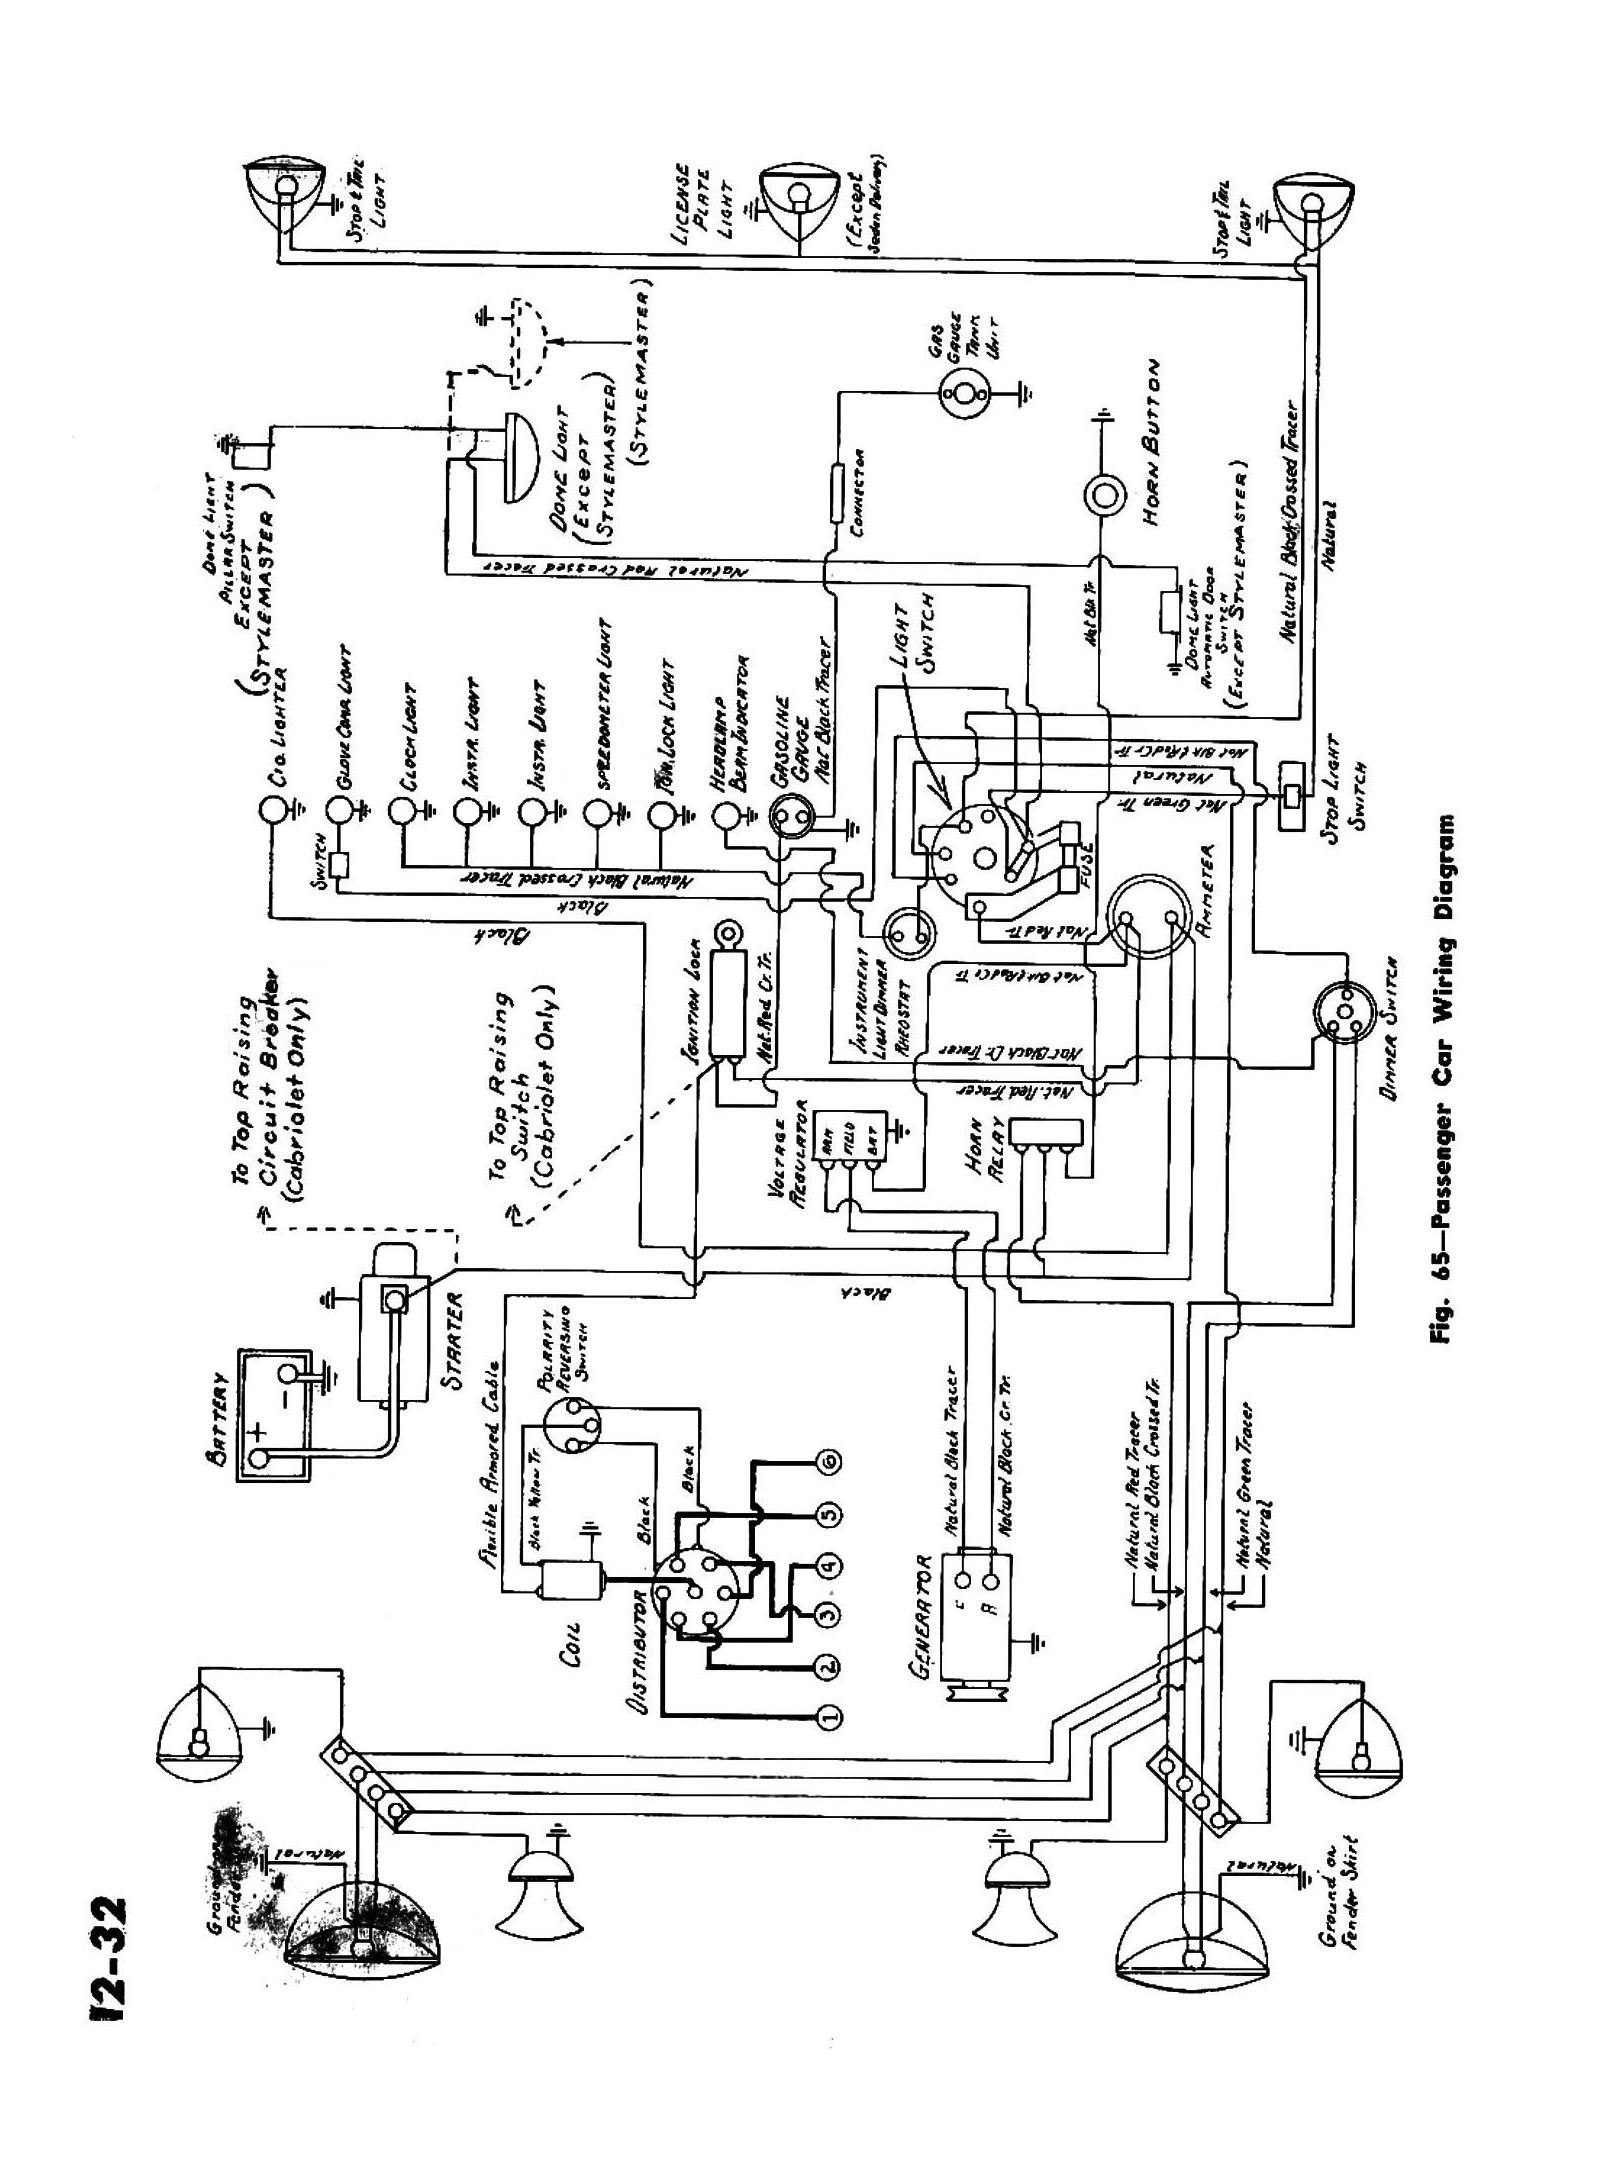 45car chevy wiring diagrams 1997 Club Car Wiring Schematic at gsmx.co